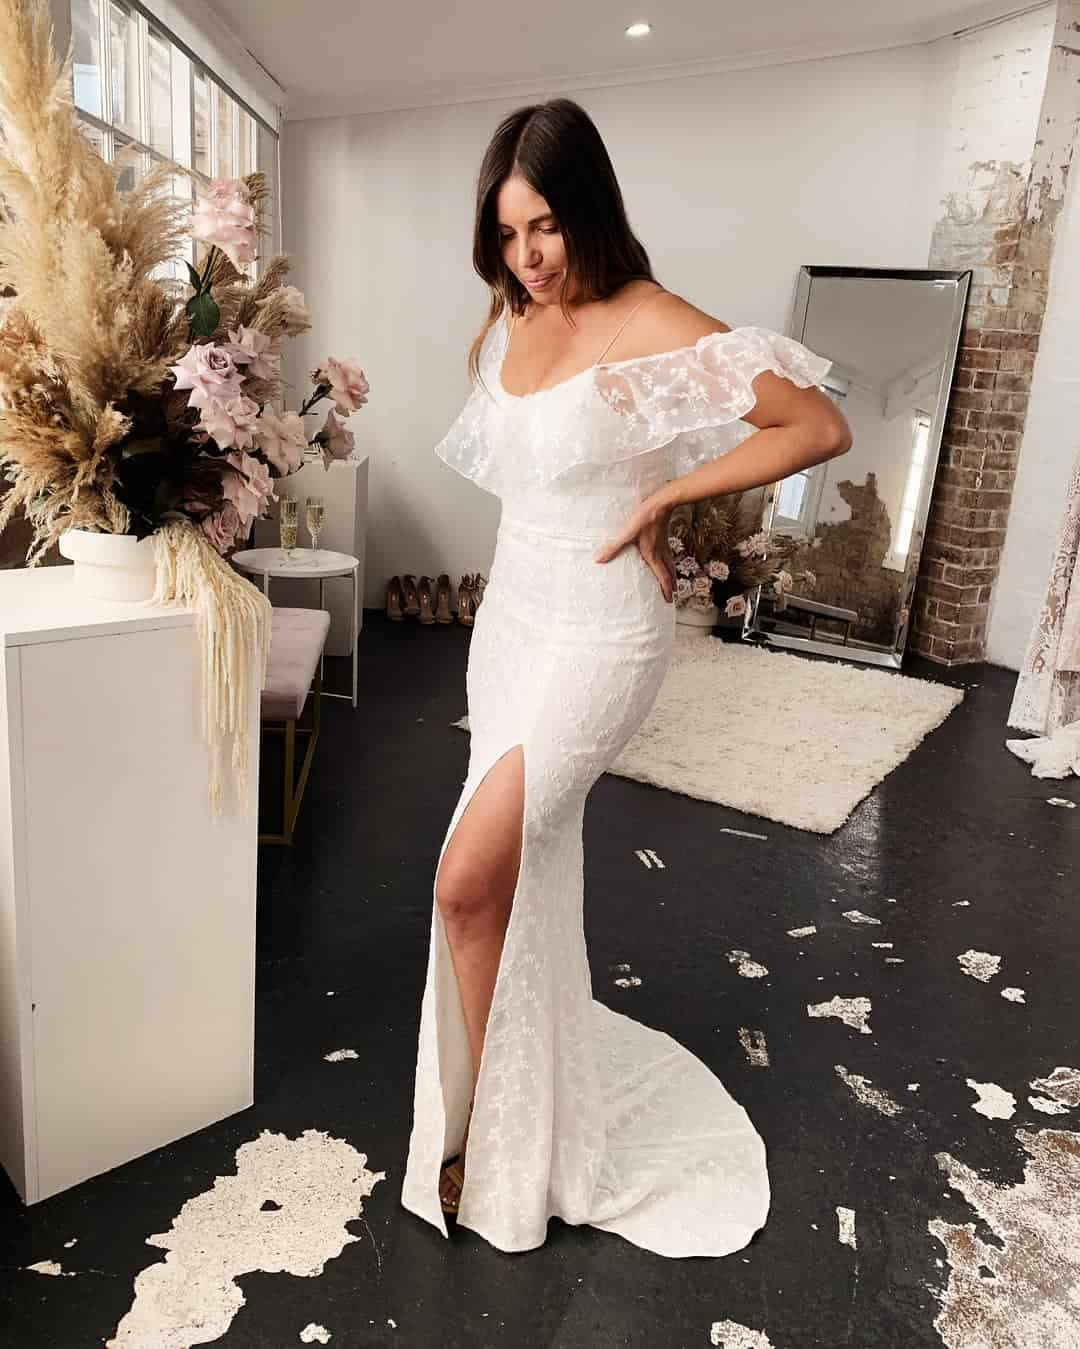 Cheap Affordable Wedding Dresses Fishtail Silhouette Showpo Bridal Lace Gown Brides Tight Wedding Budget 4